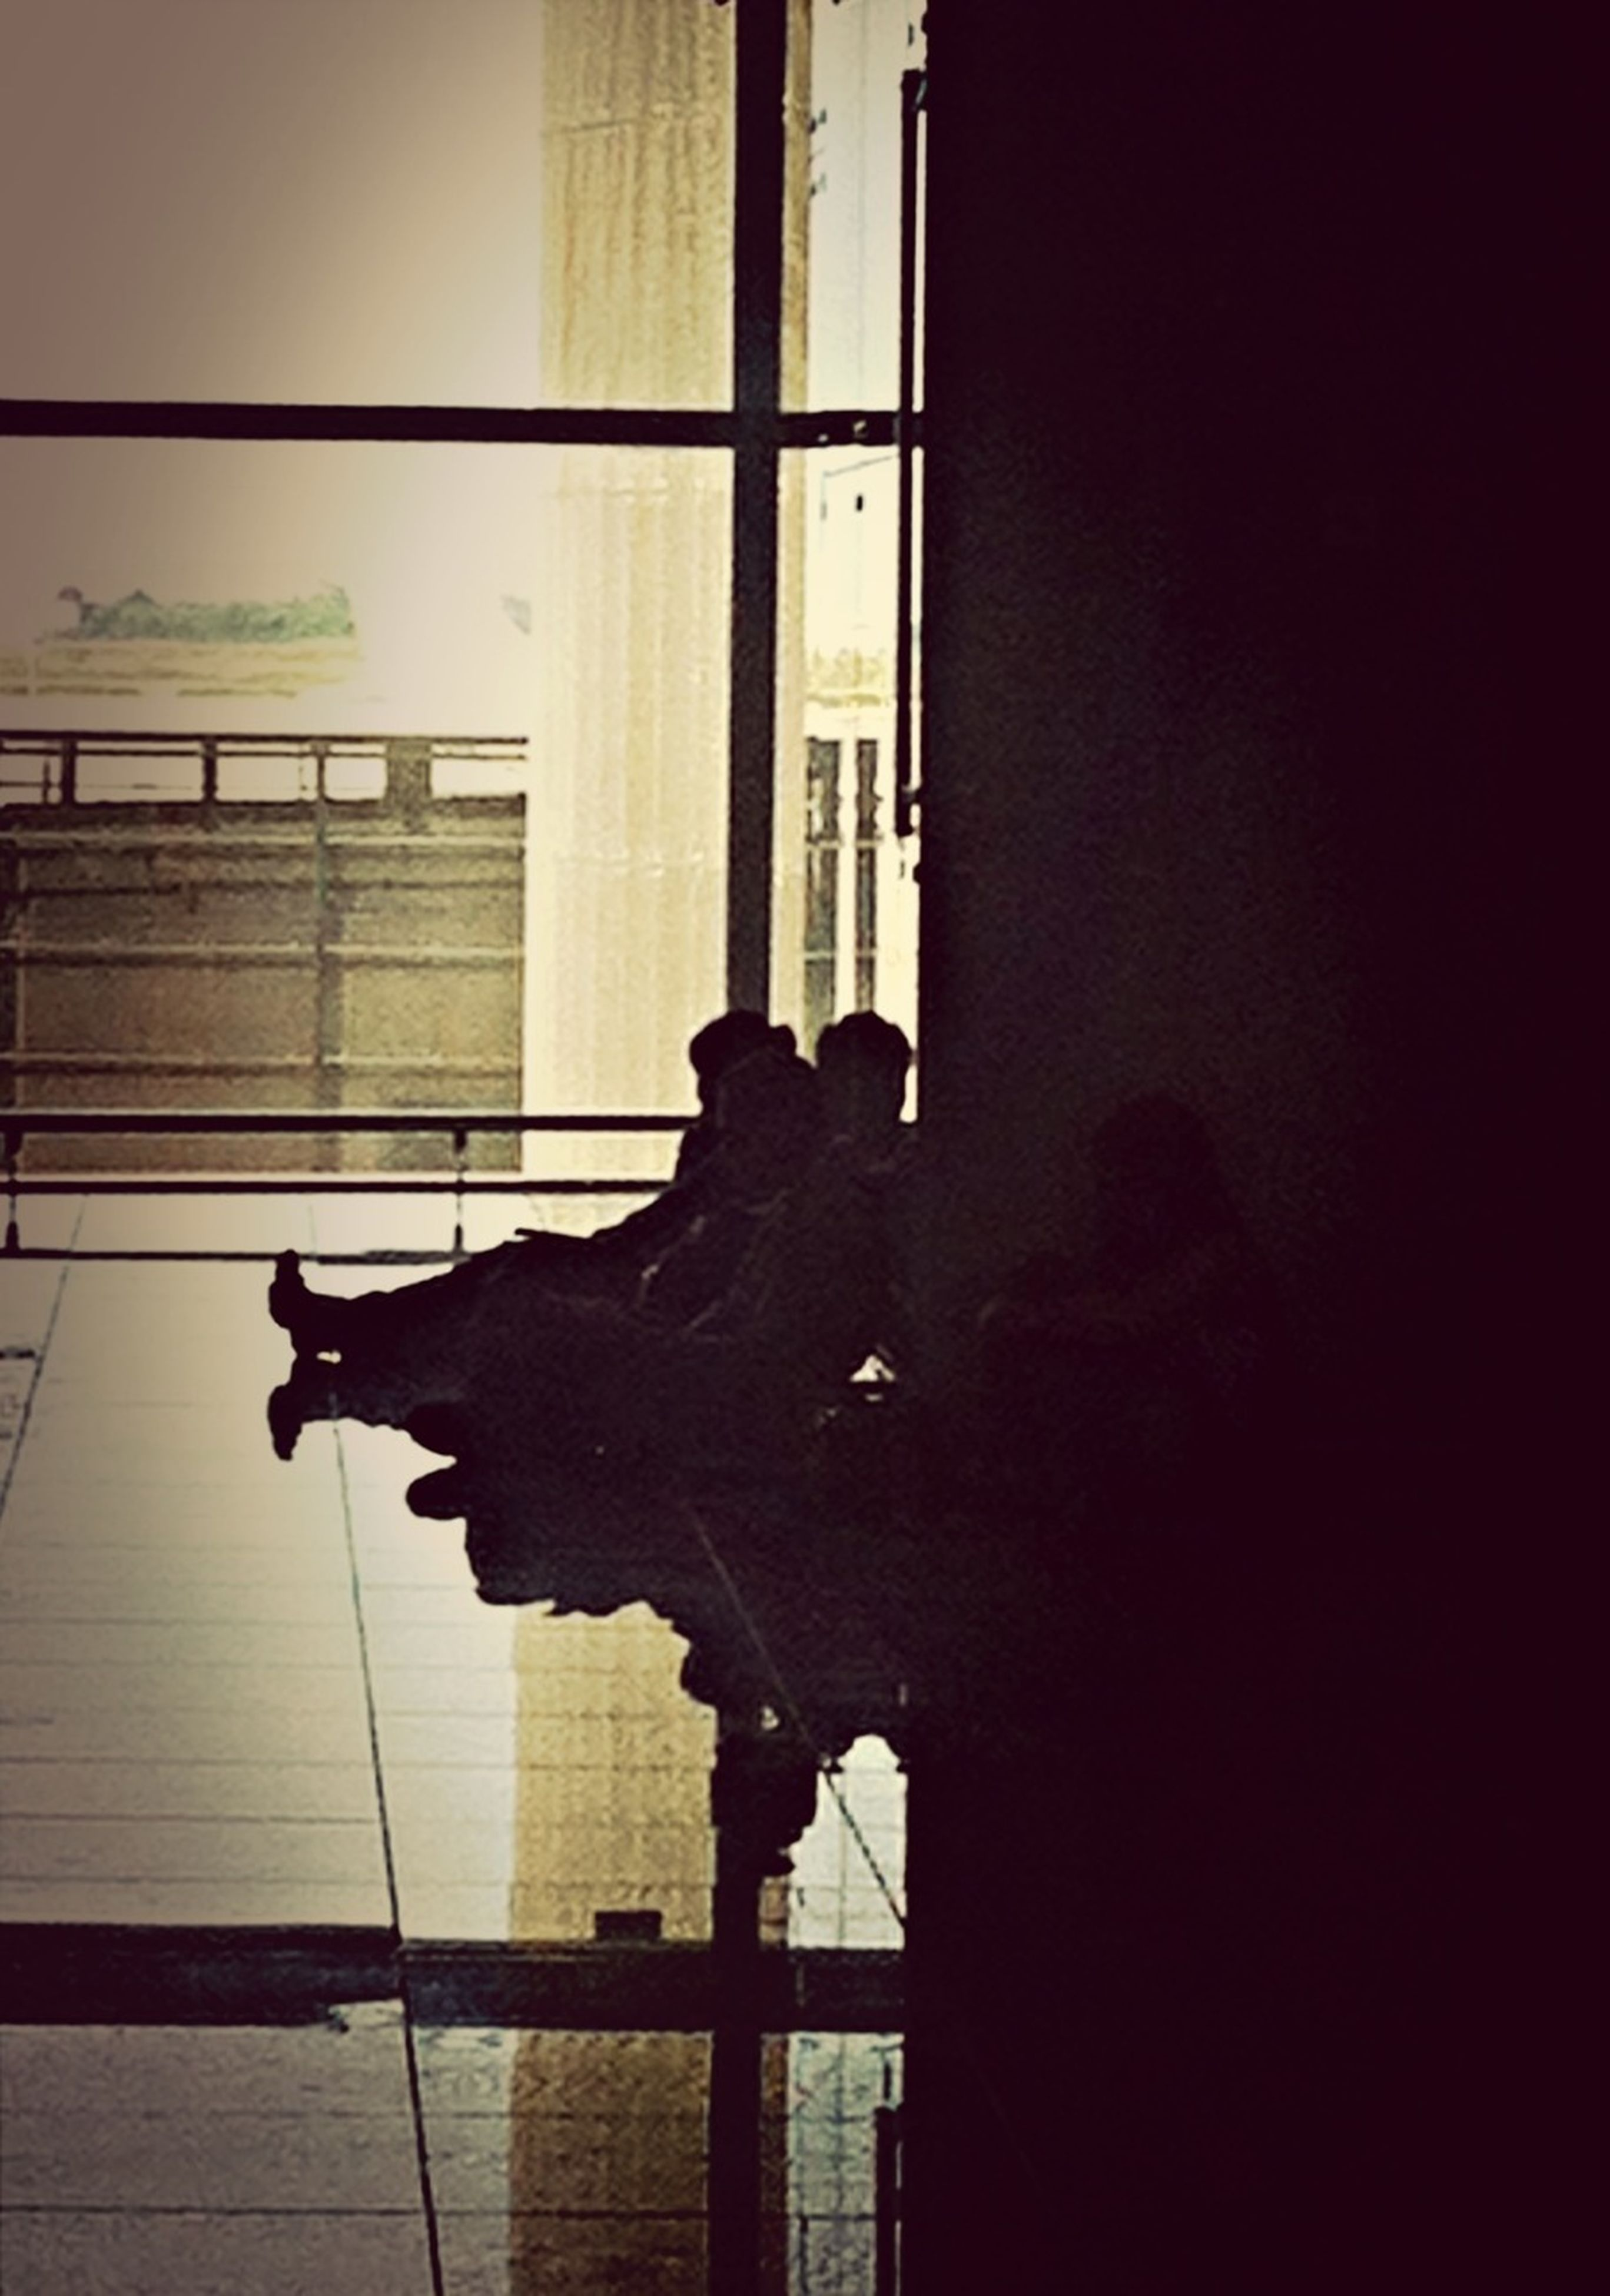 indoors, window, silhouette, architecture, built structure, full length, low angle view, wall - building feature, building exterior, shadow, glass - material, side view, home interior, sunlight, building, standing, day, human representation